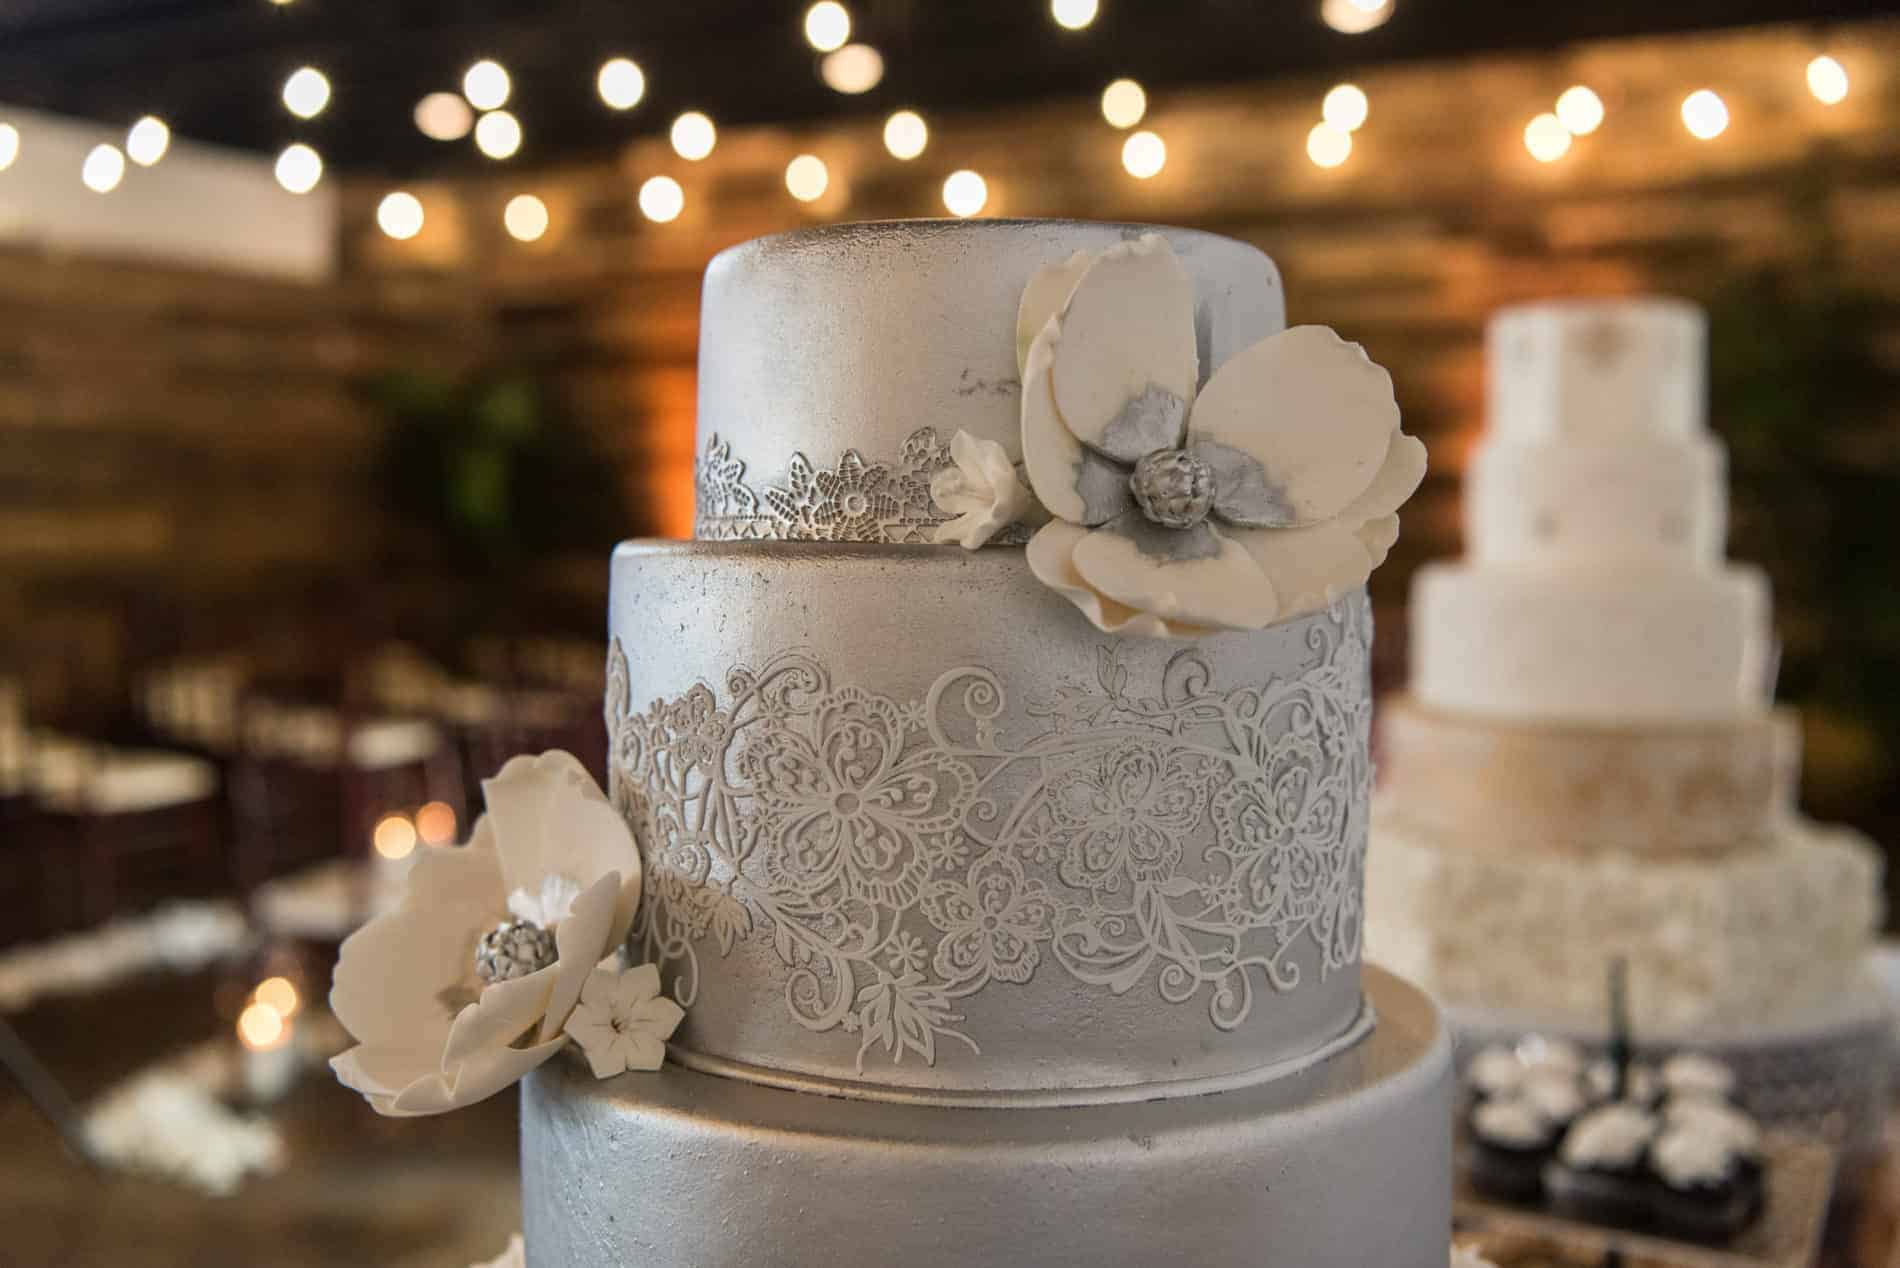 Beautiful Flora themed wedding cake in a rustic setting